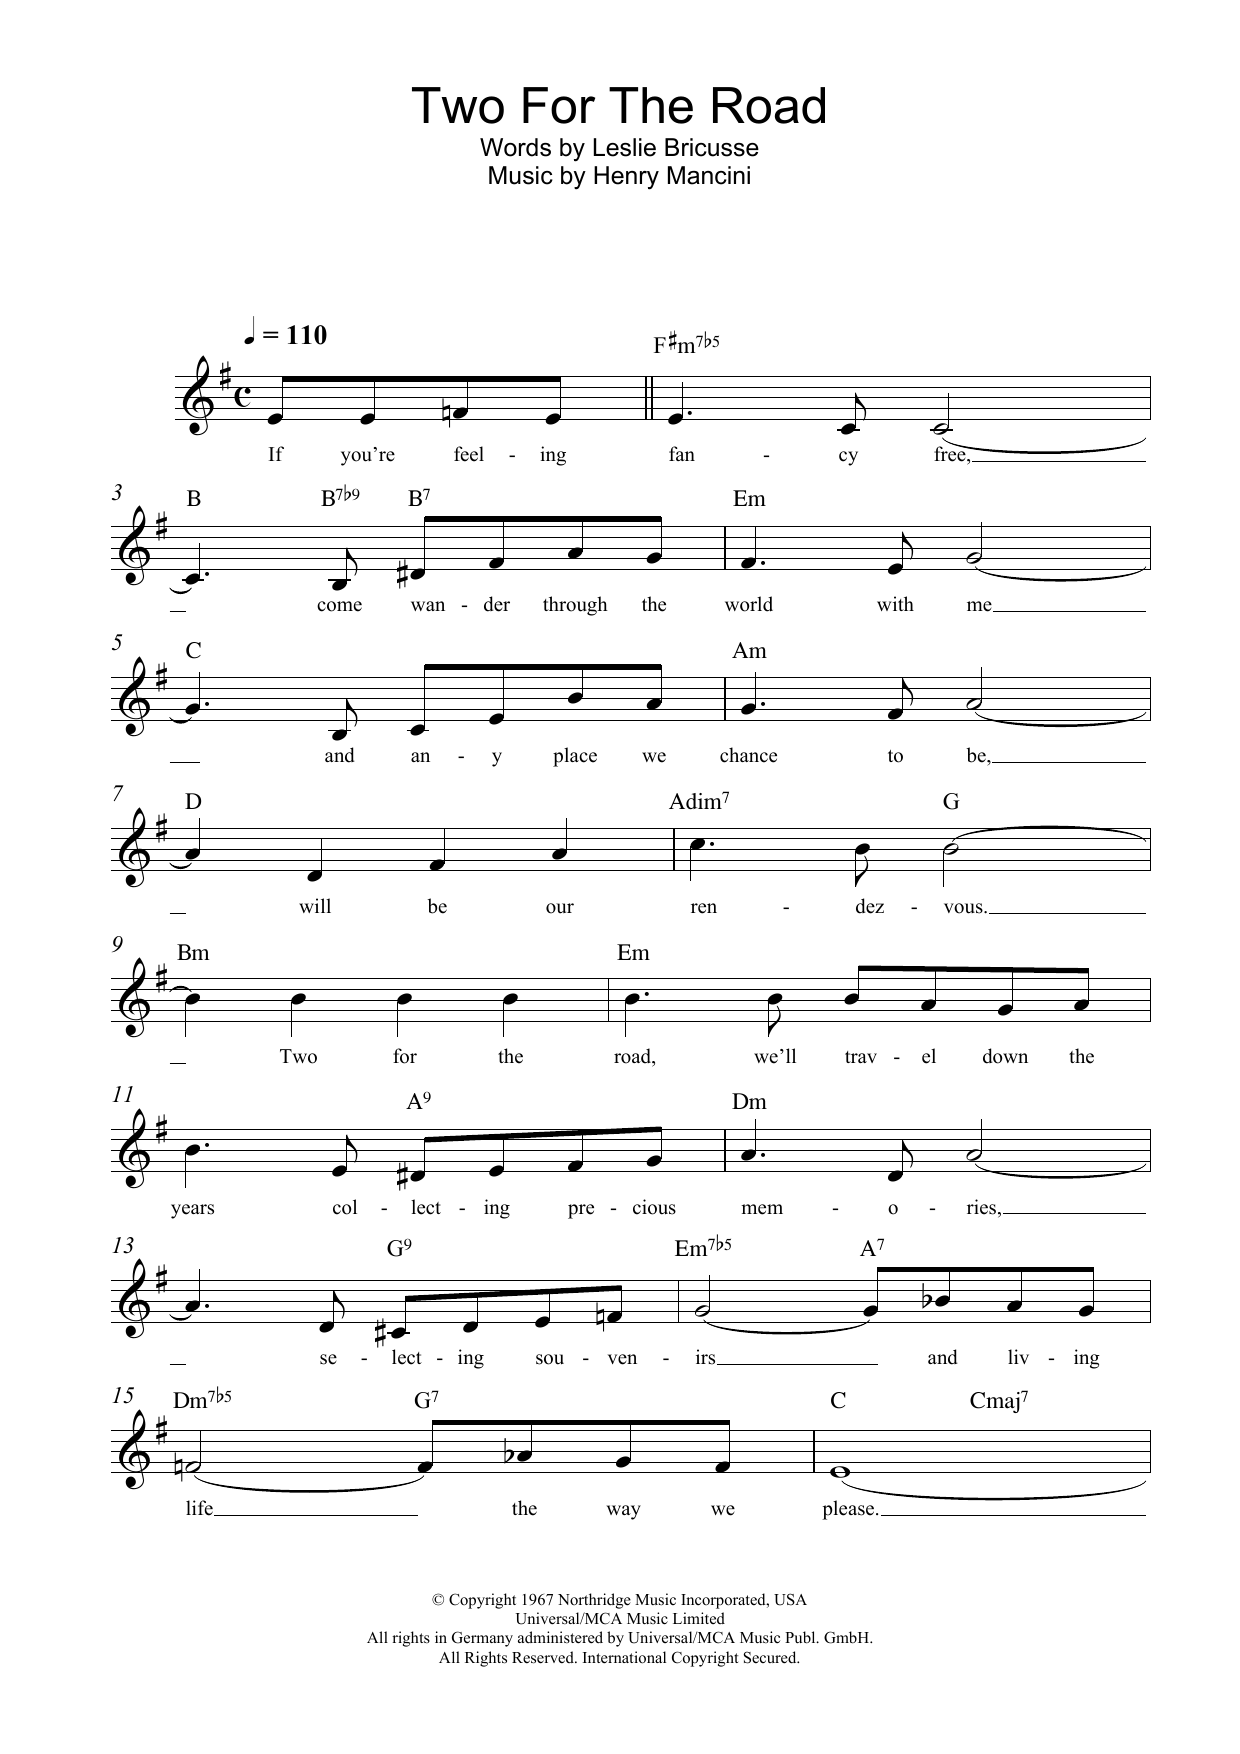 Two For The Road Henry Mancini Melody Line Lyrics Chords